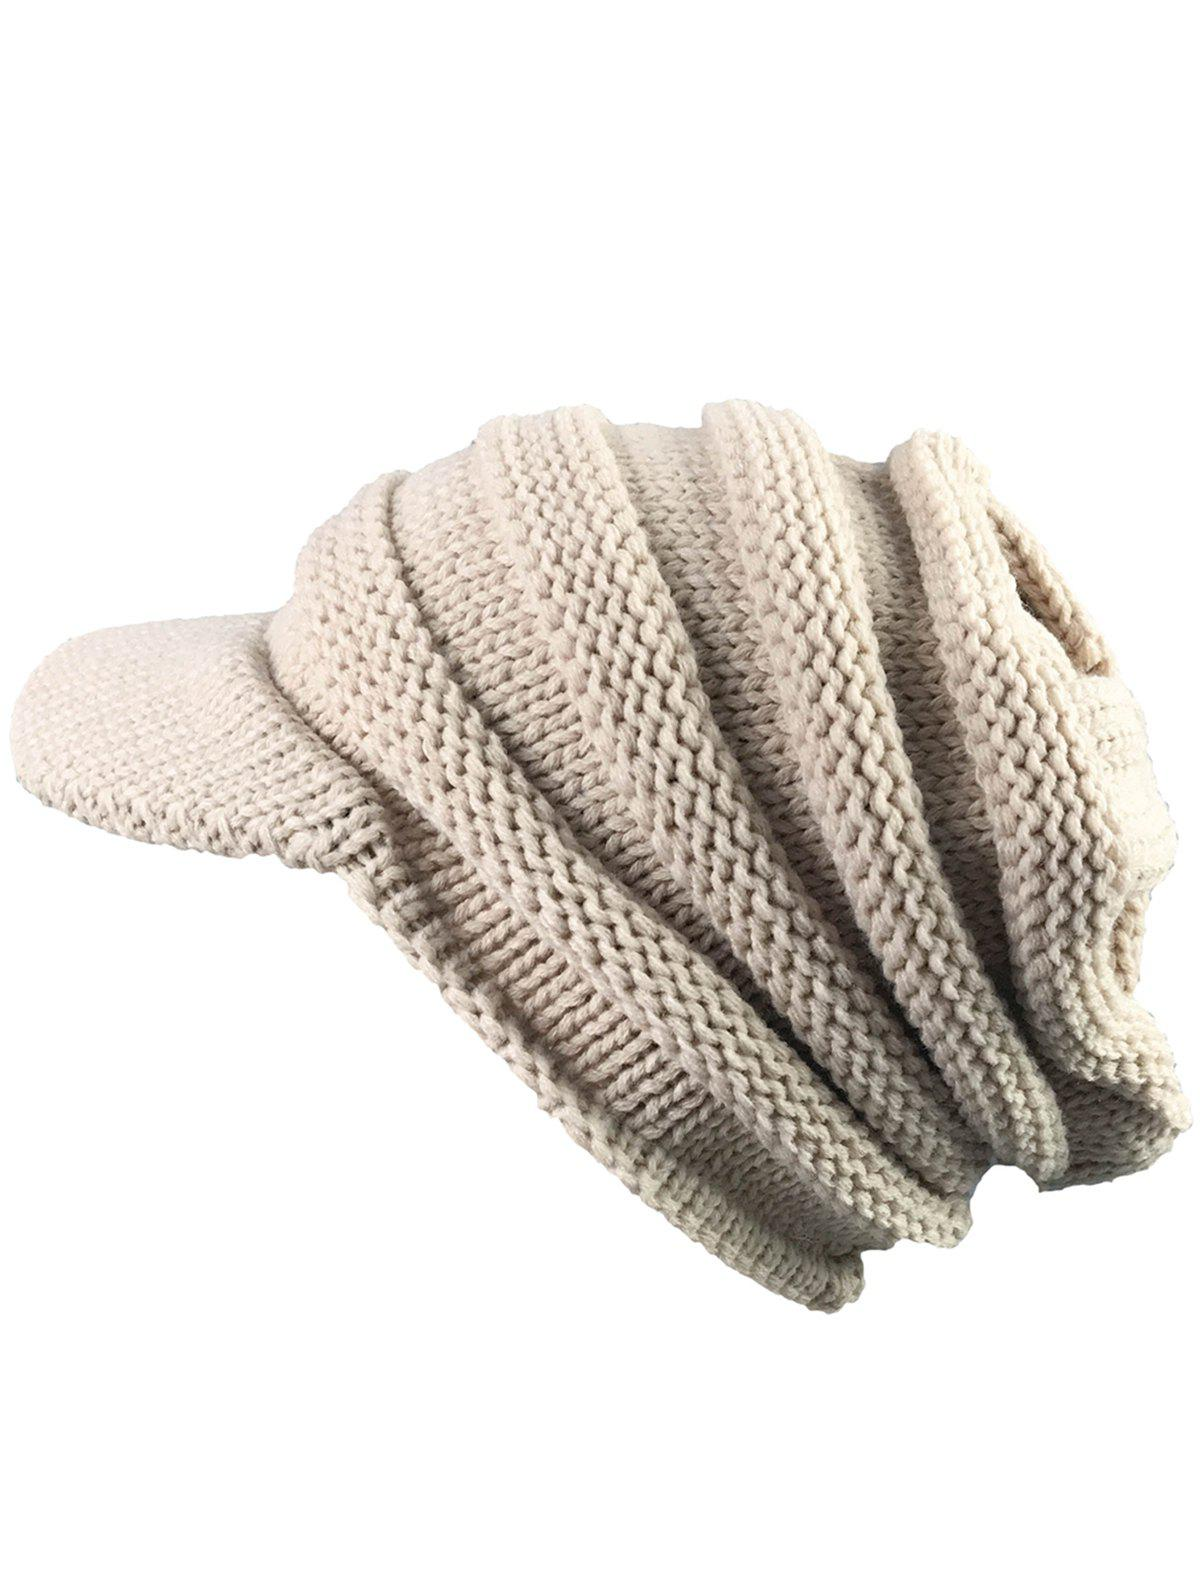 2018 outdoor striped pattern ribbed knit beanie hat beige in hats outdoor striped pattern ribbed knit beanie hat beige bankloansurffo Choice Image